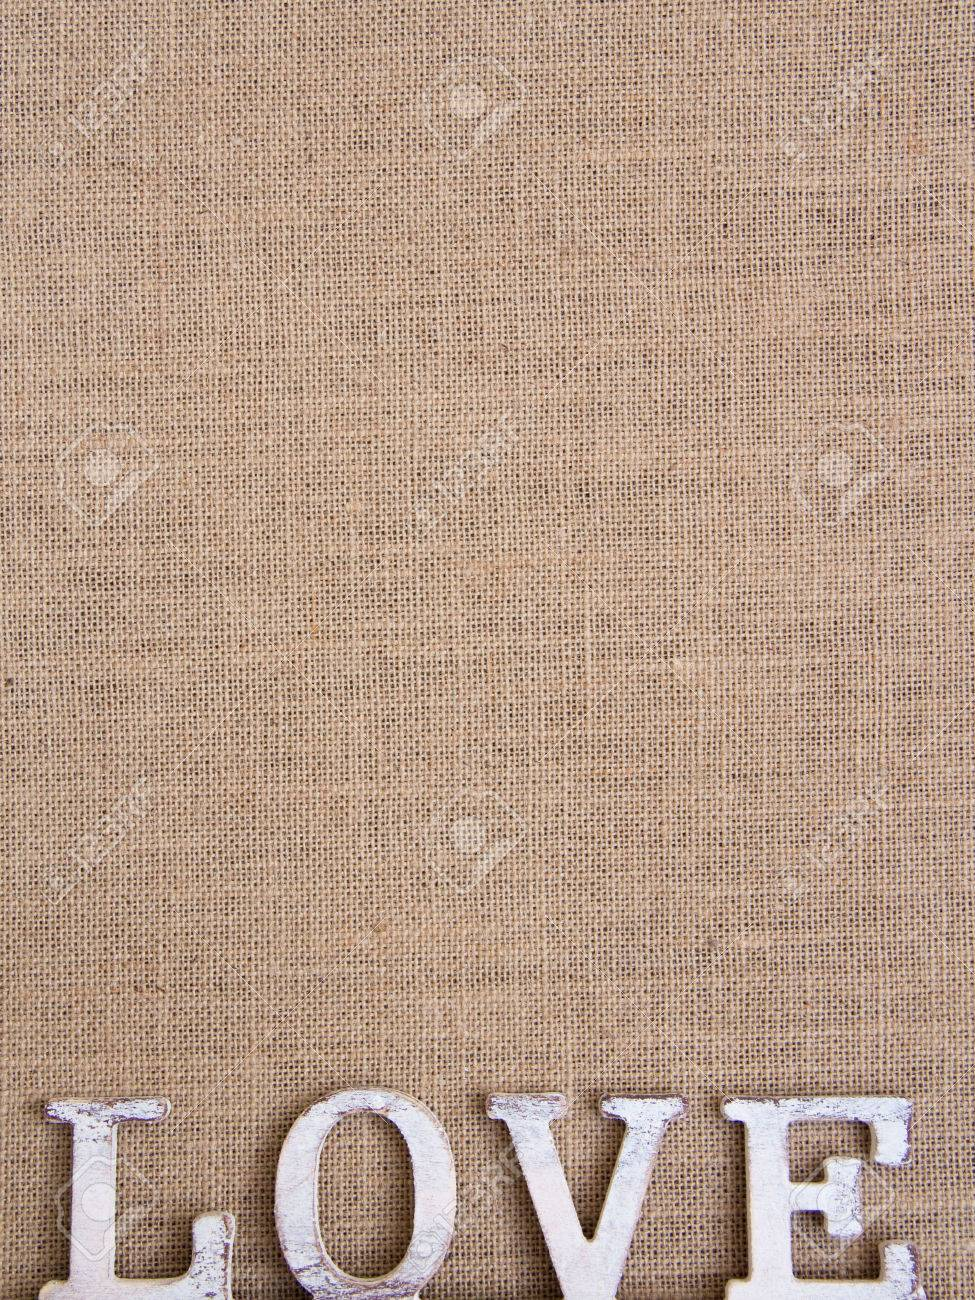 Word love on burlap Shabby chic Archivio Fotografico - 25707917